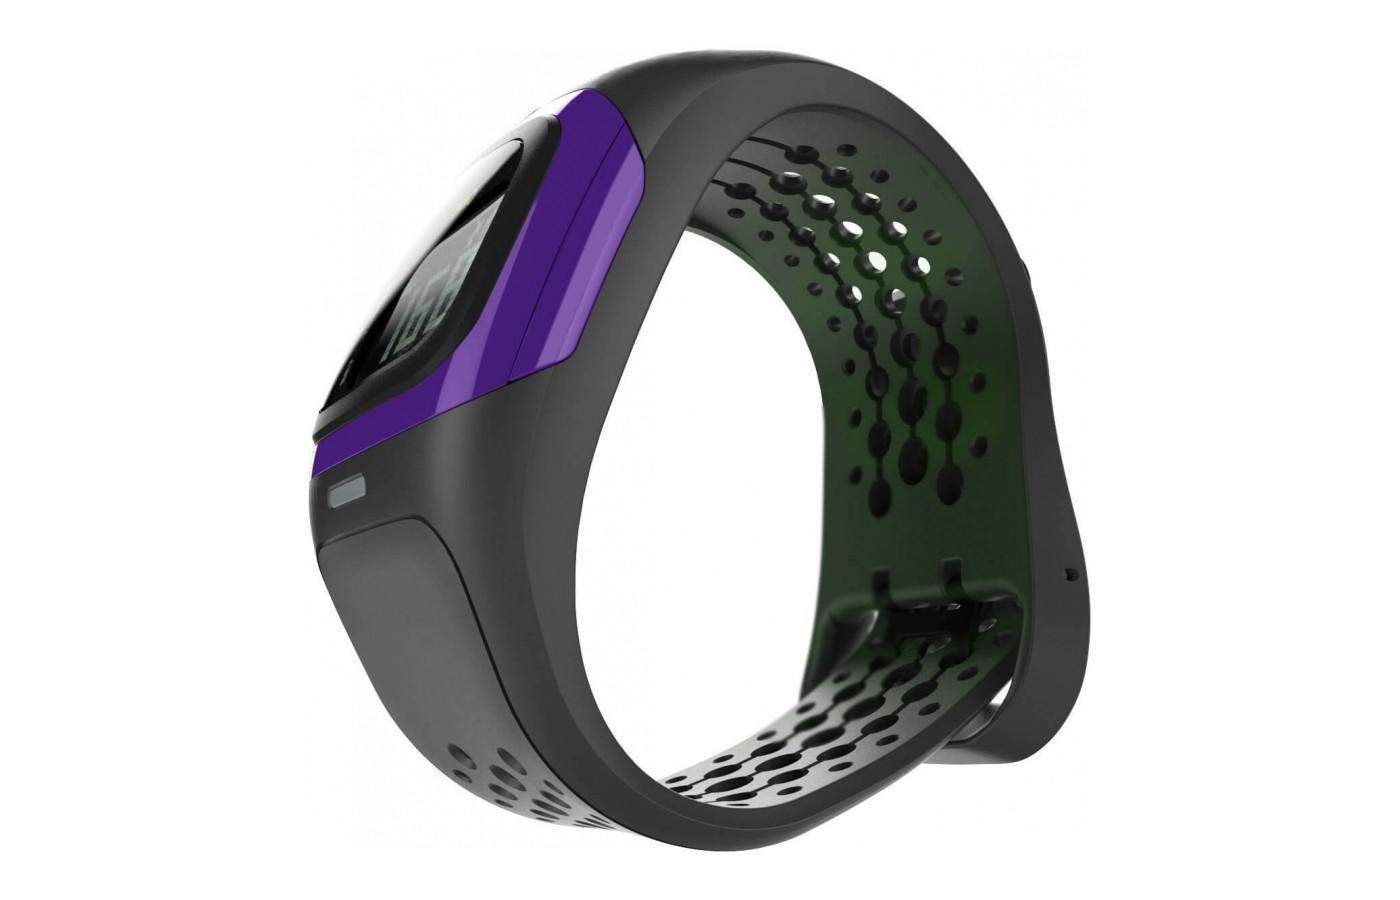 Mio Alpha monitors heart rate without an uncomfortable chest strap